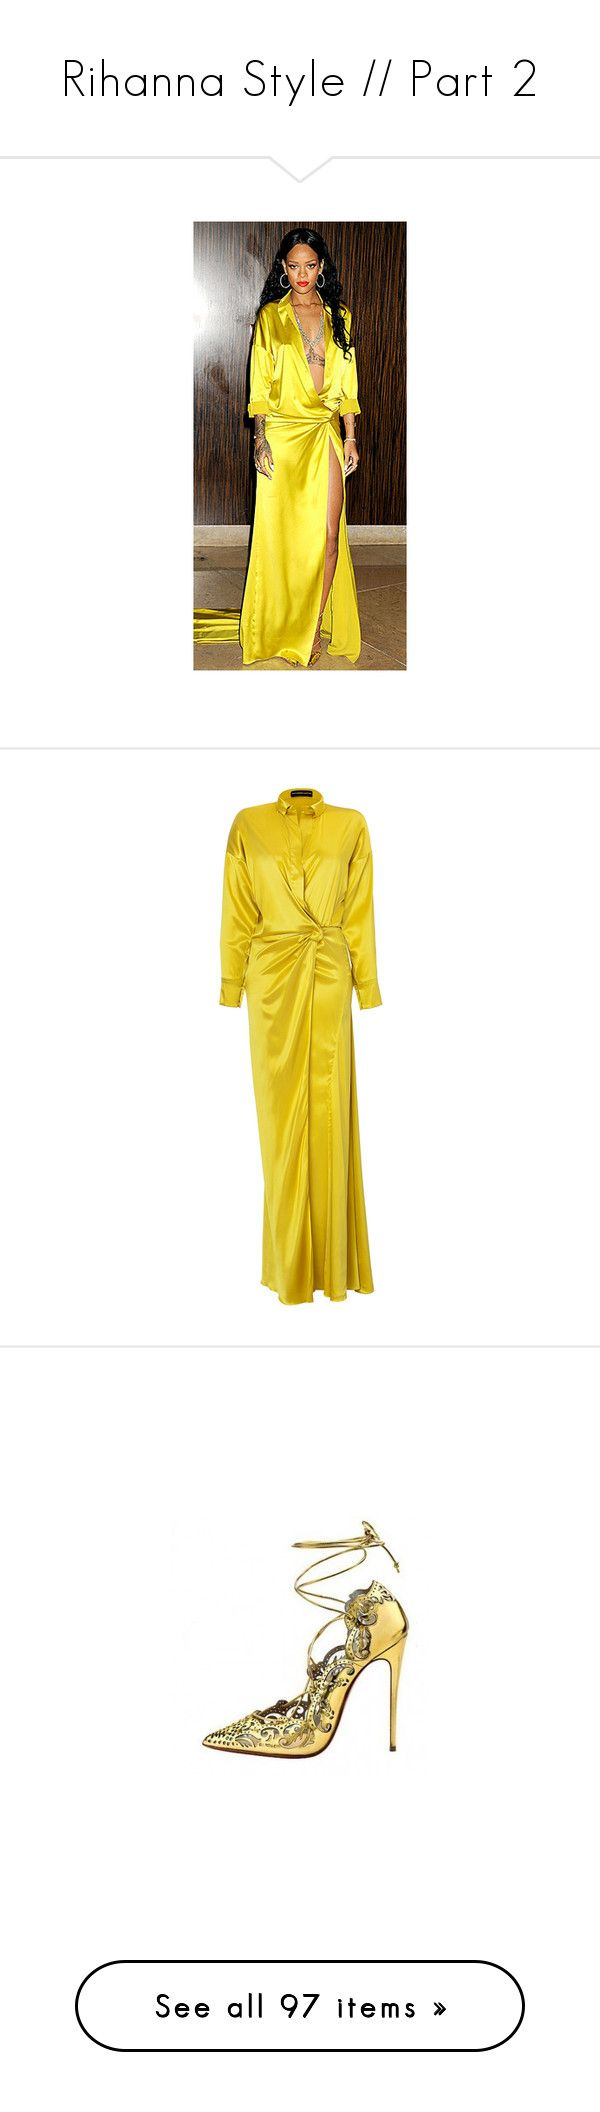 """Rihanna Style // Part 2"" by erkrauth ❤ liked on Polyvore featuring red carpet, dresses, gowns, alexandre vauthier, yellow, yellow evening dress, long sleeve evening dresses, yellow evening gown, long sleeve evening gowns and yellow dresses"